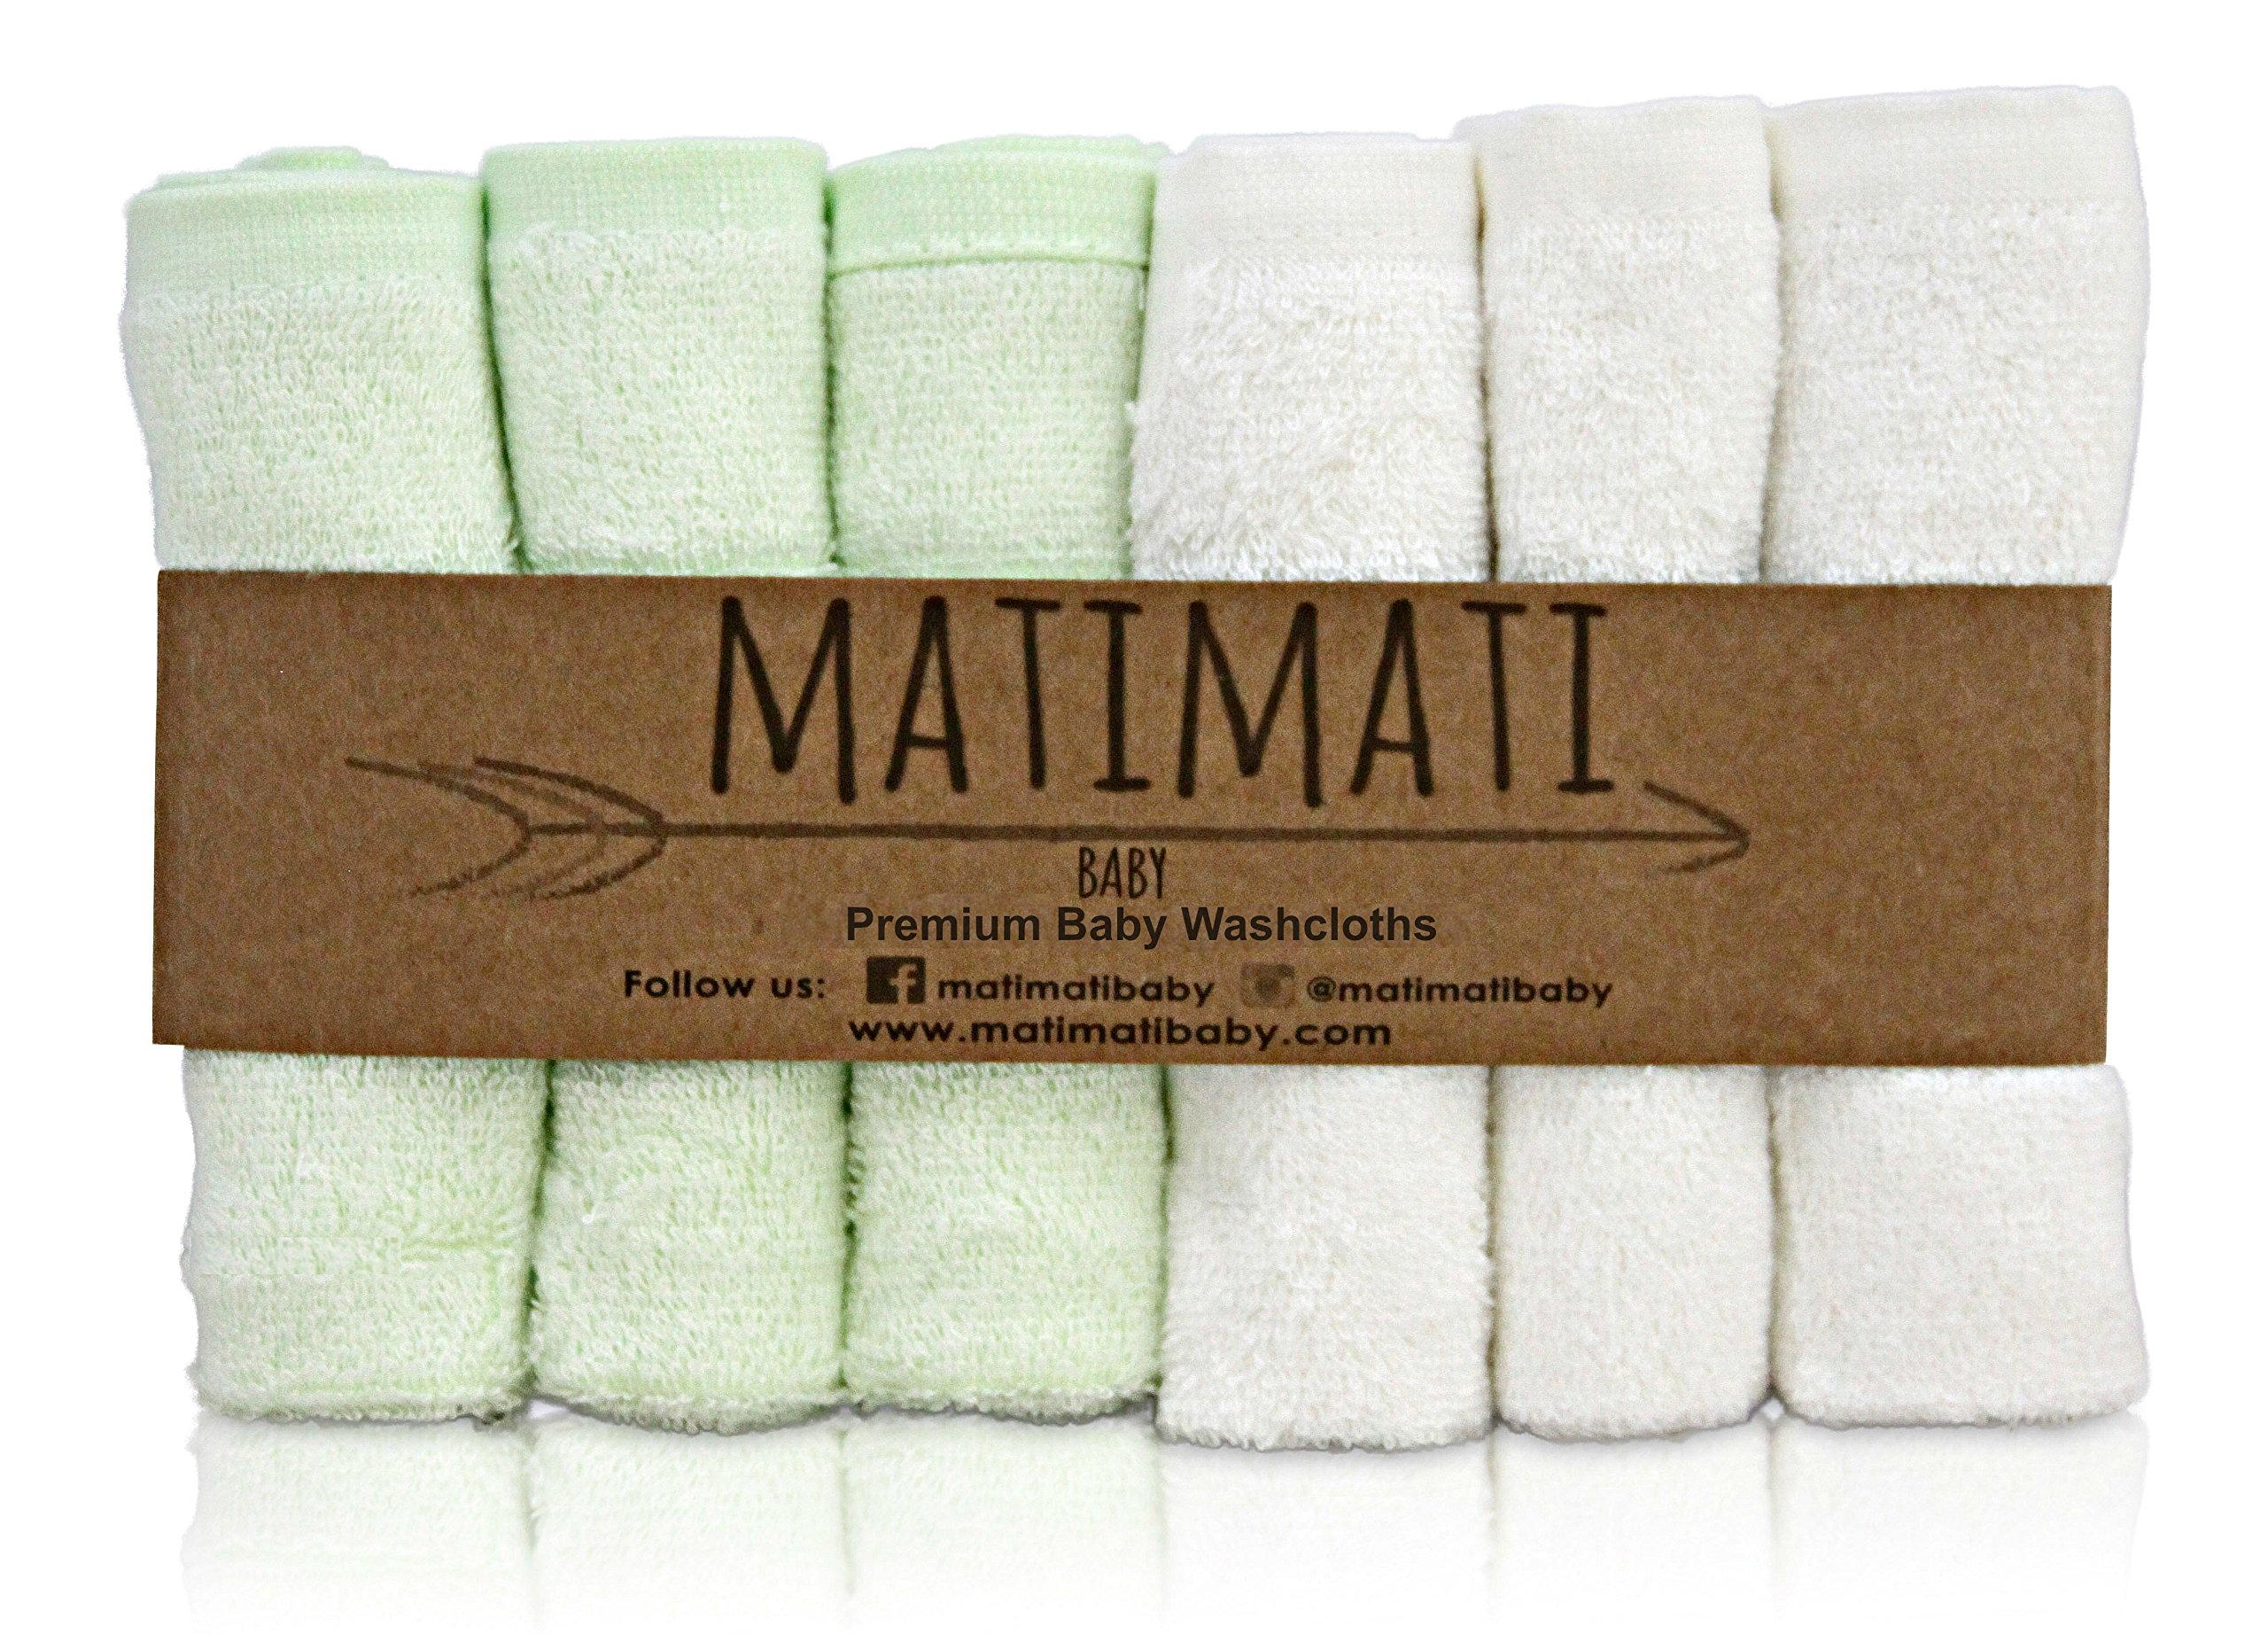 """Matimati Rayon From Bamboo Baby Washcloths (6-pack) - Soft & Absorbent Towels For Baby's Sensitive Skin - Perfect 10""""x10"""" Reusable Wipes - Excellent Shower / Registry Gift"""